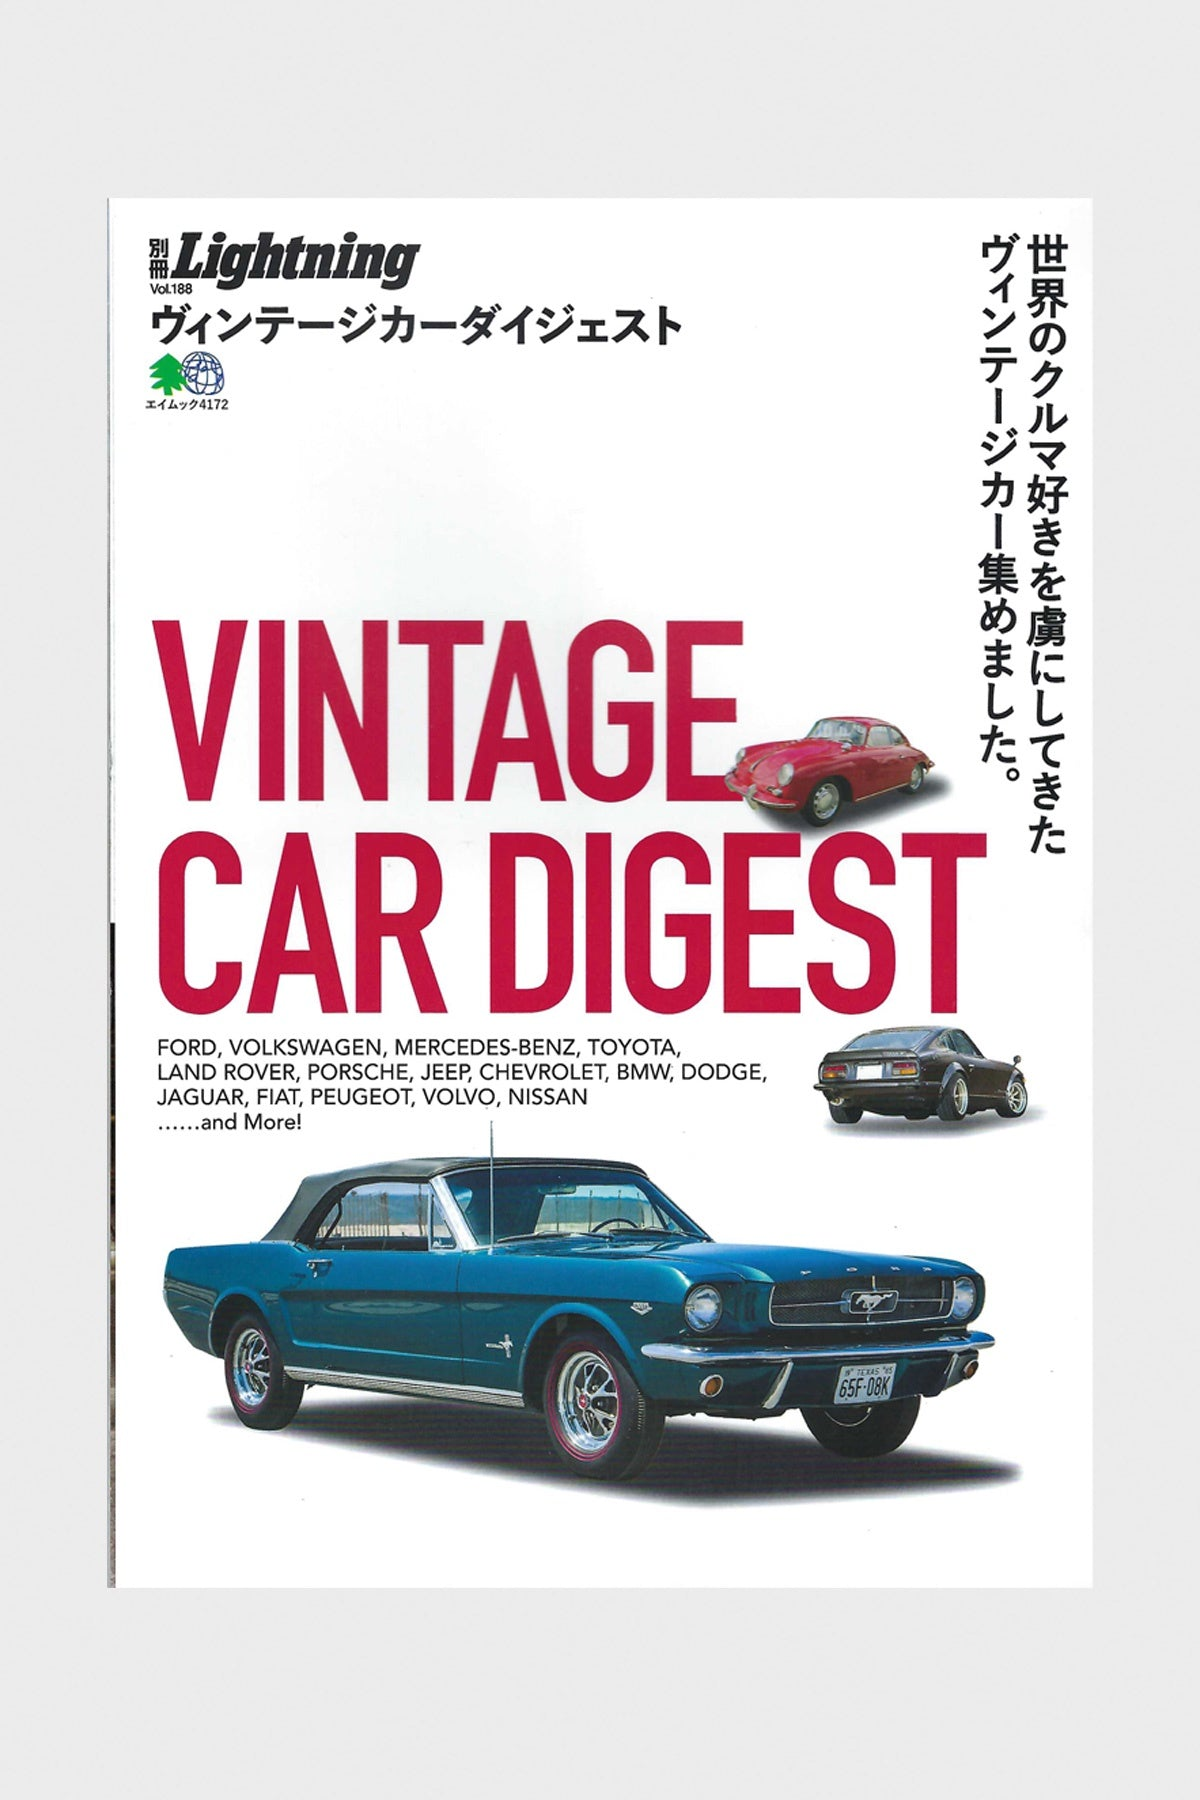 Lightning - Vintage Car Digest - Canoe Club